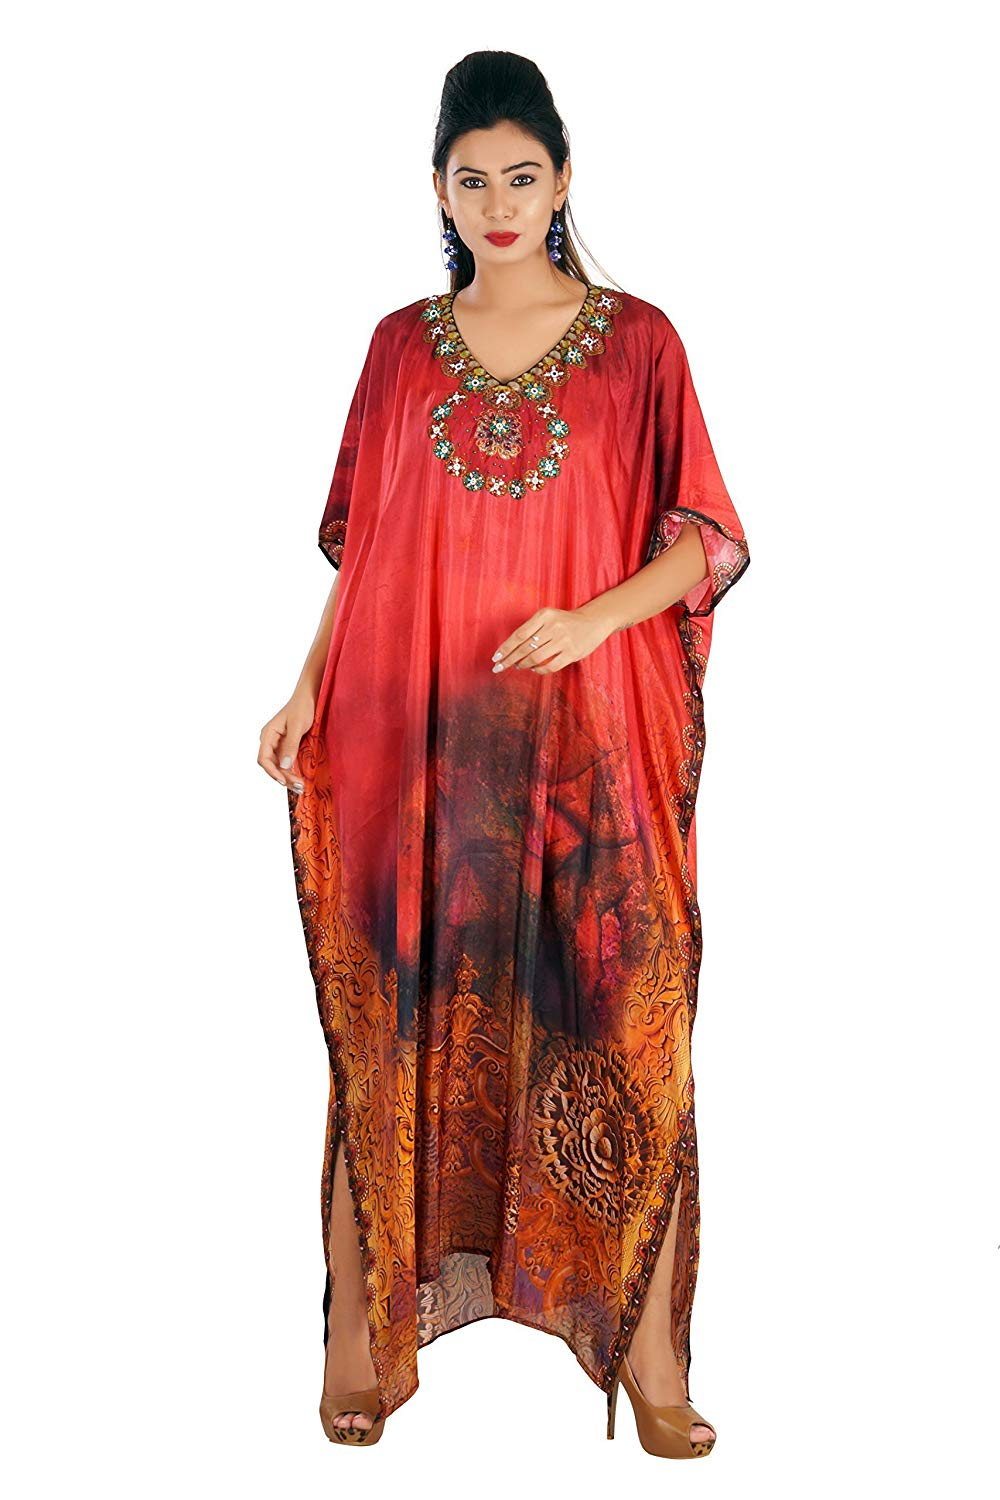 2586a32626 Get Quotations · Silk kaftan online one piece dress on sale jeweled hand  made formal